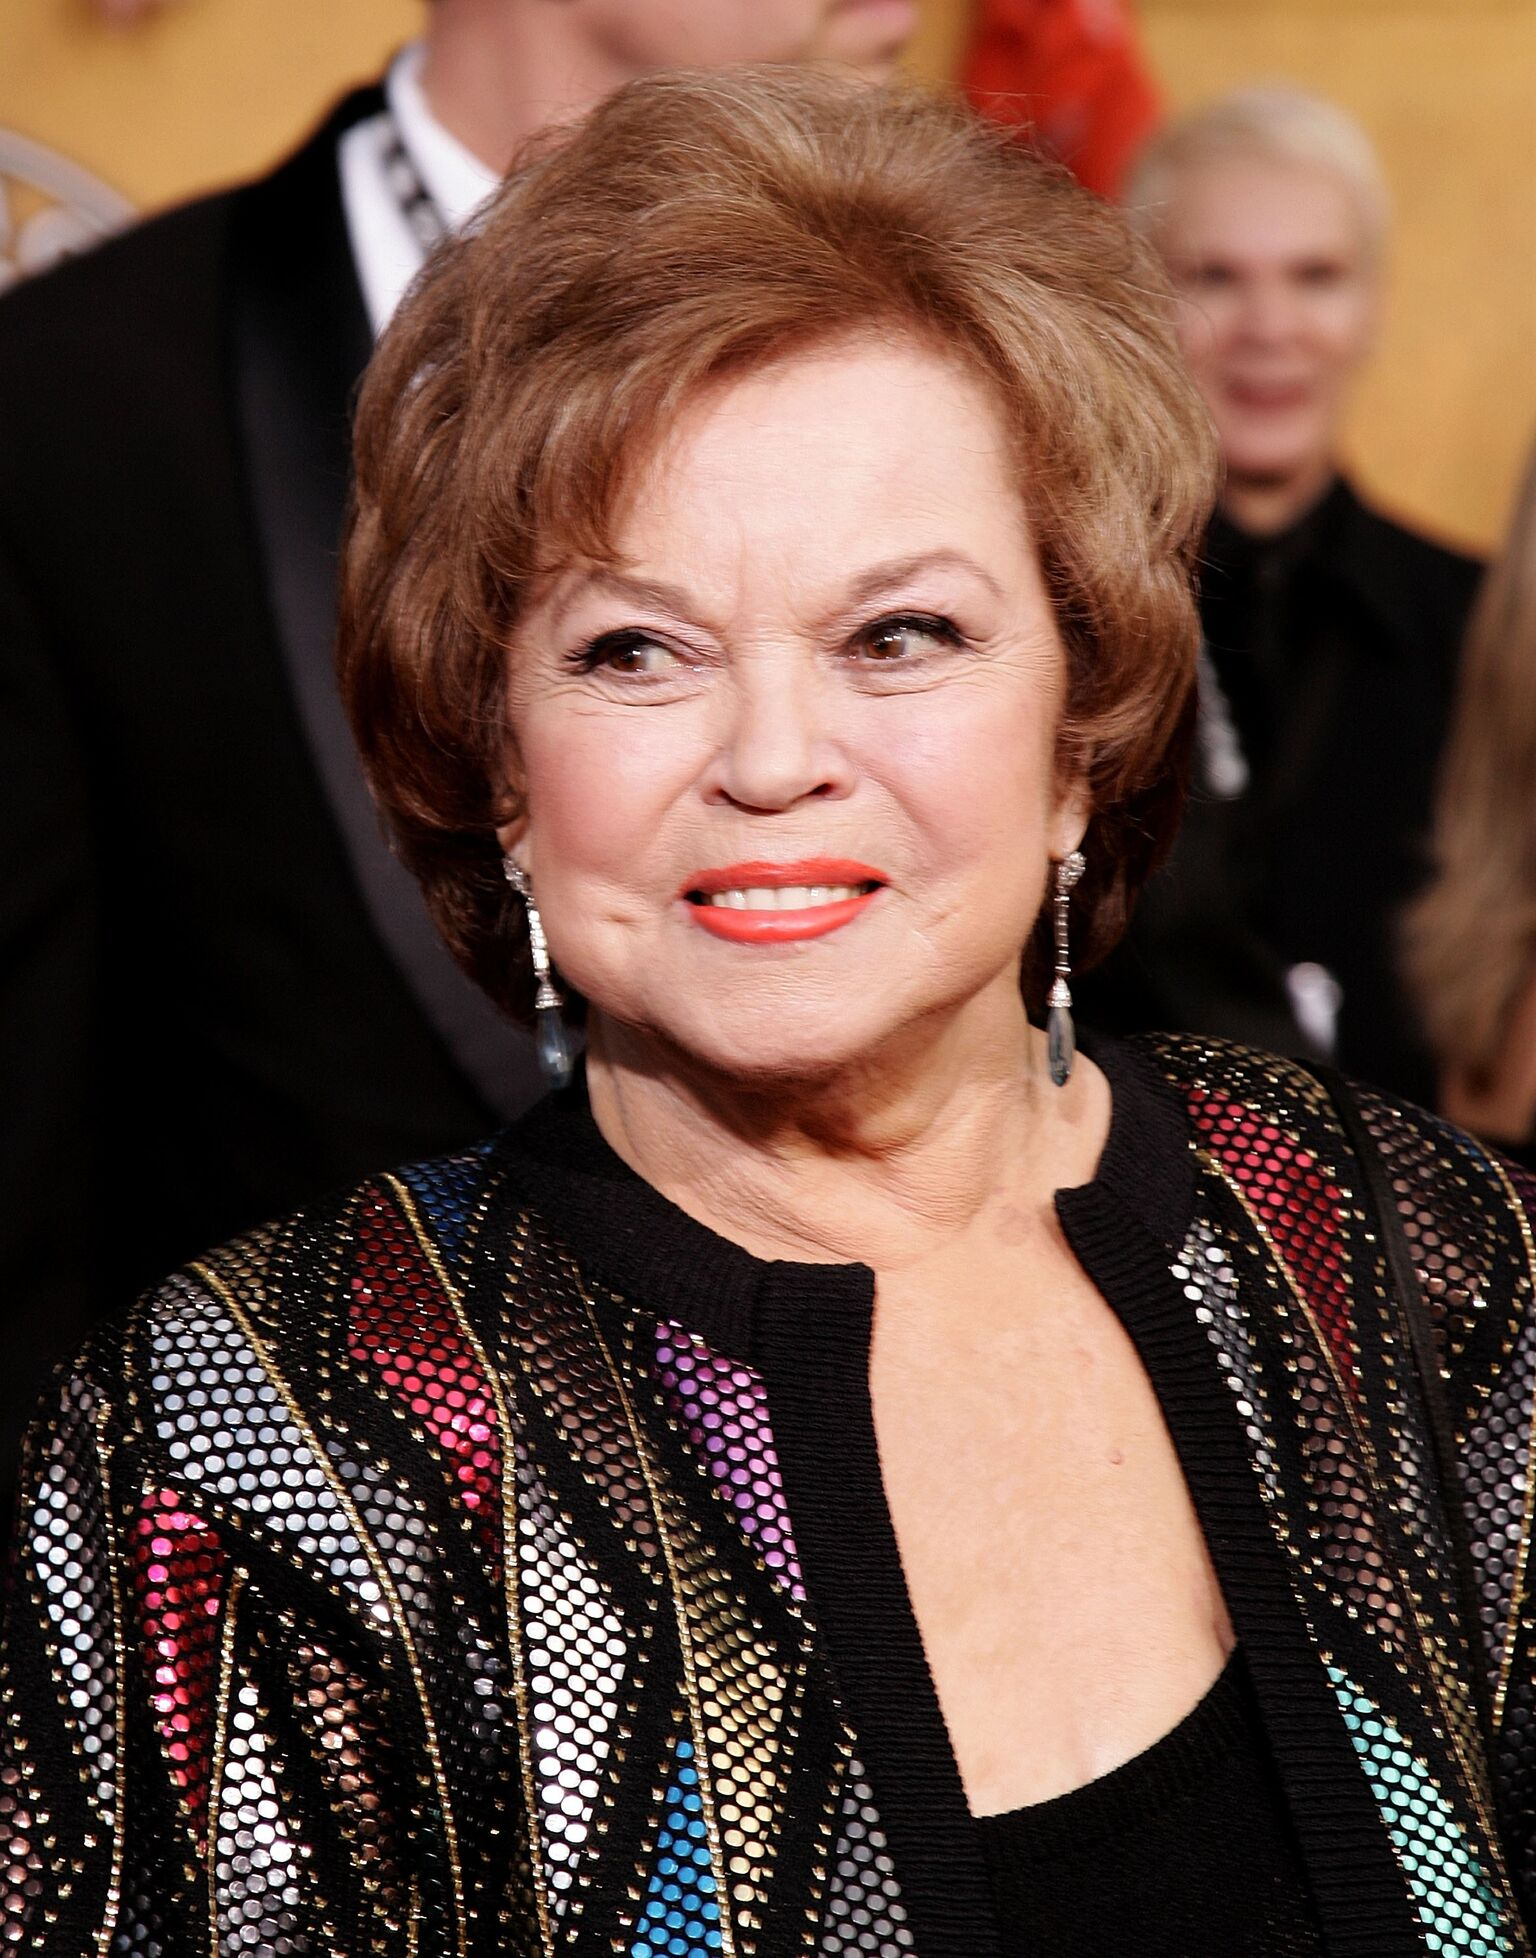 Shirley Temple Black arrives at the 12th Annual Screen Actors Guild Awards | Getty Images